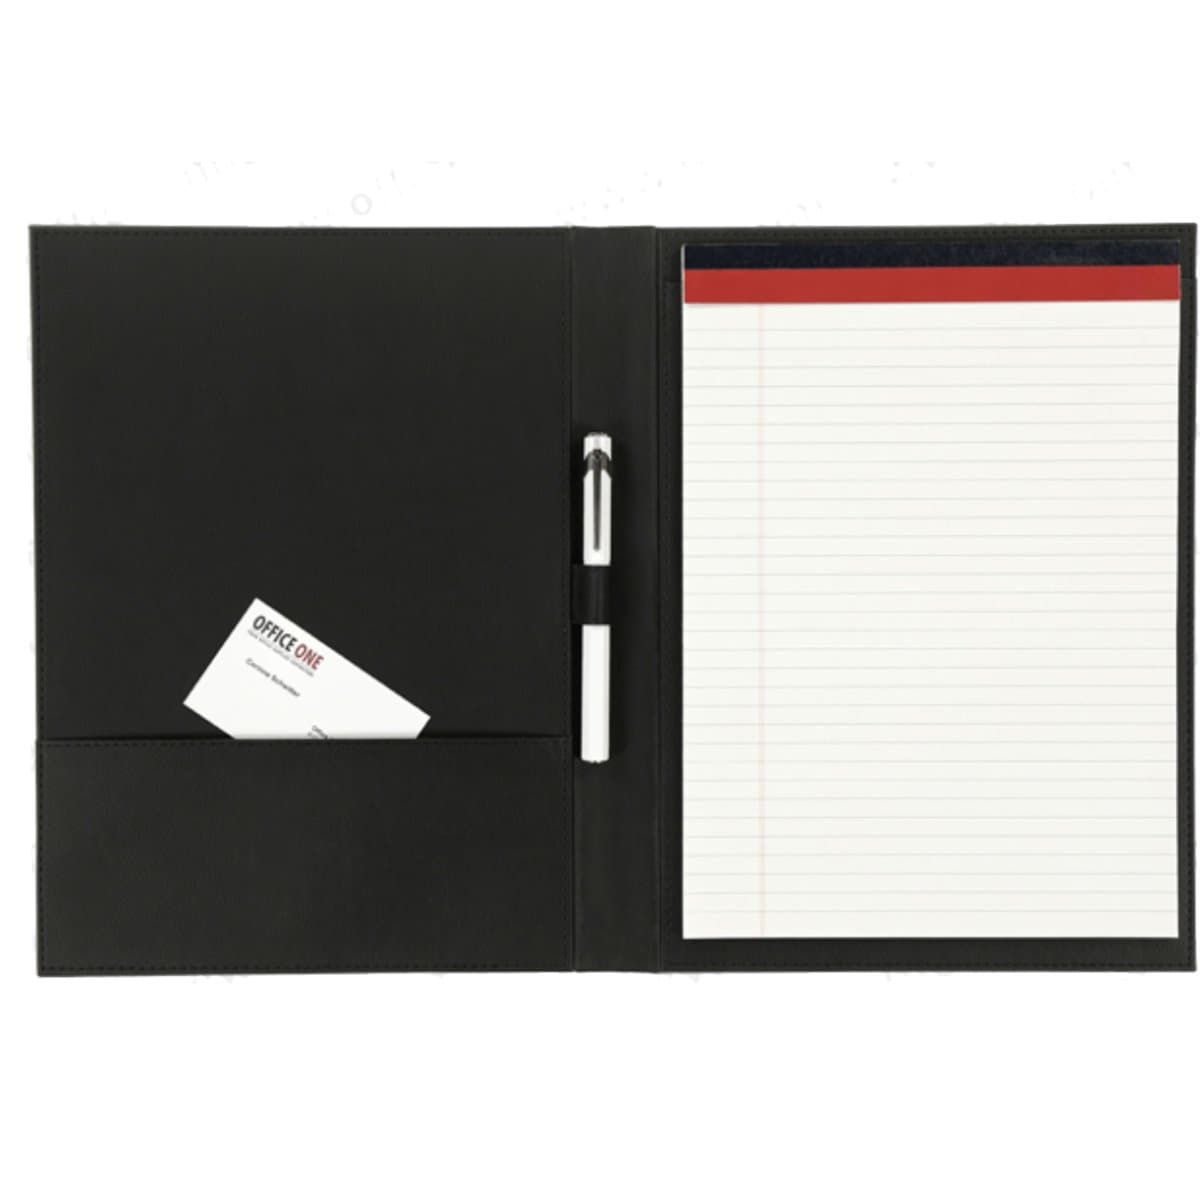 Konrad S. Conference Folder for A4 Notepad, PU Leather, Black